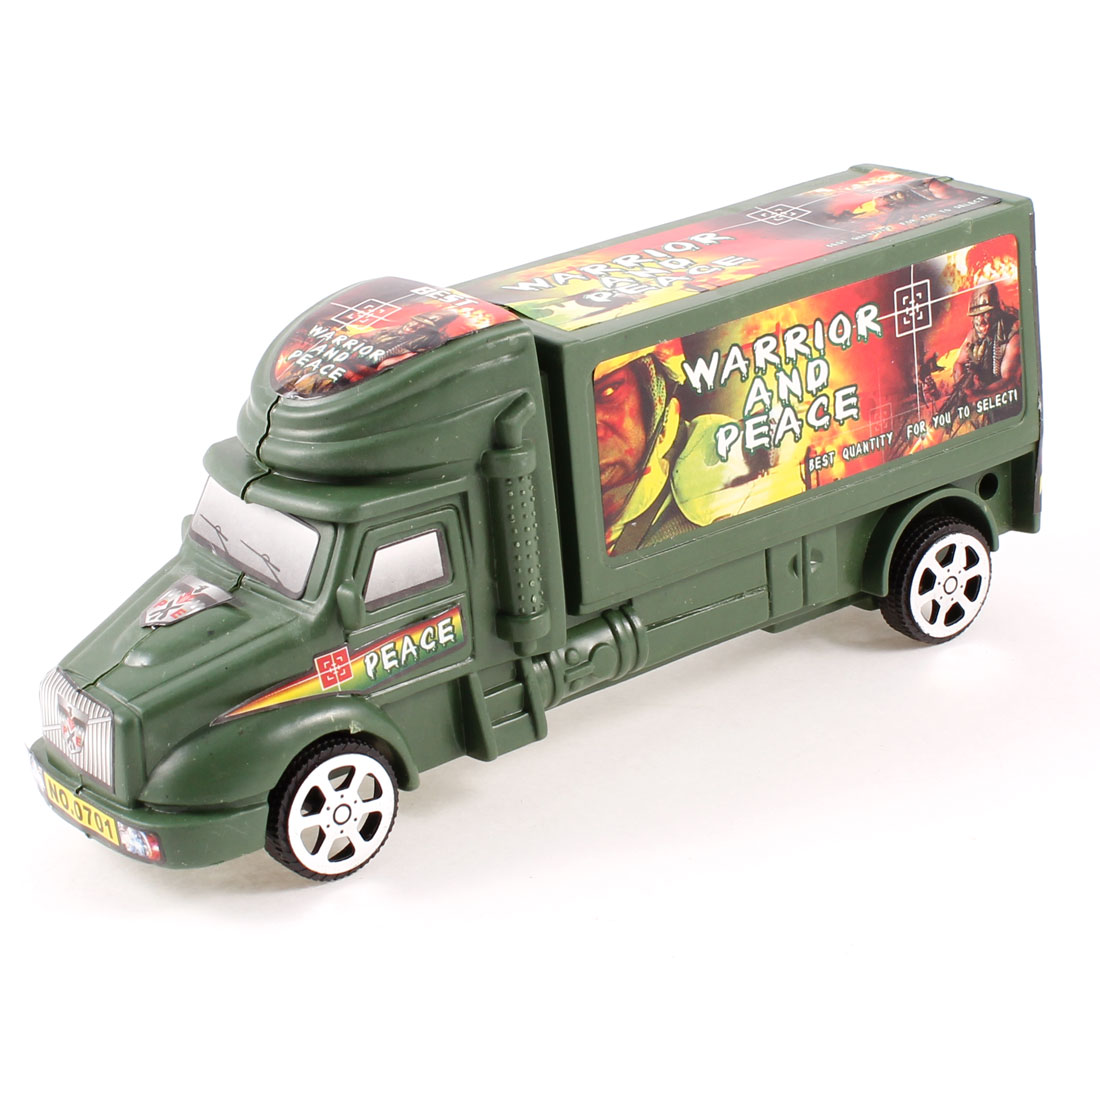 Plastic 4 Wheels Police Car Model Toy Olive Green for Children Kids